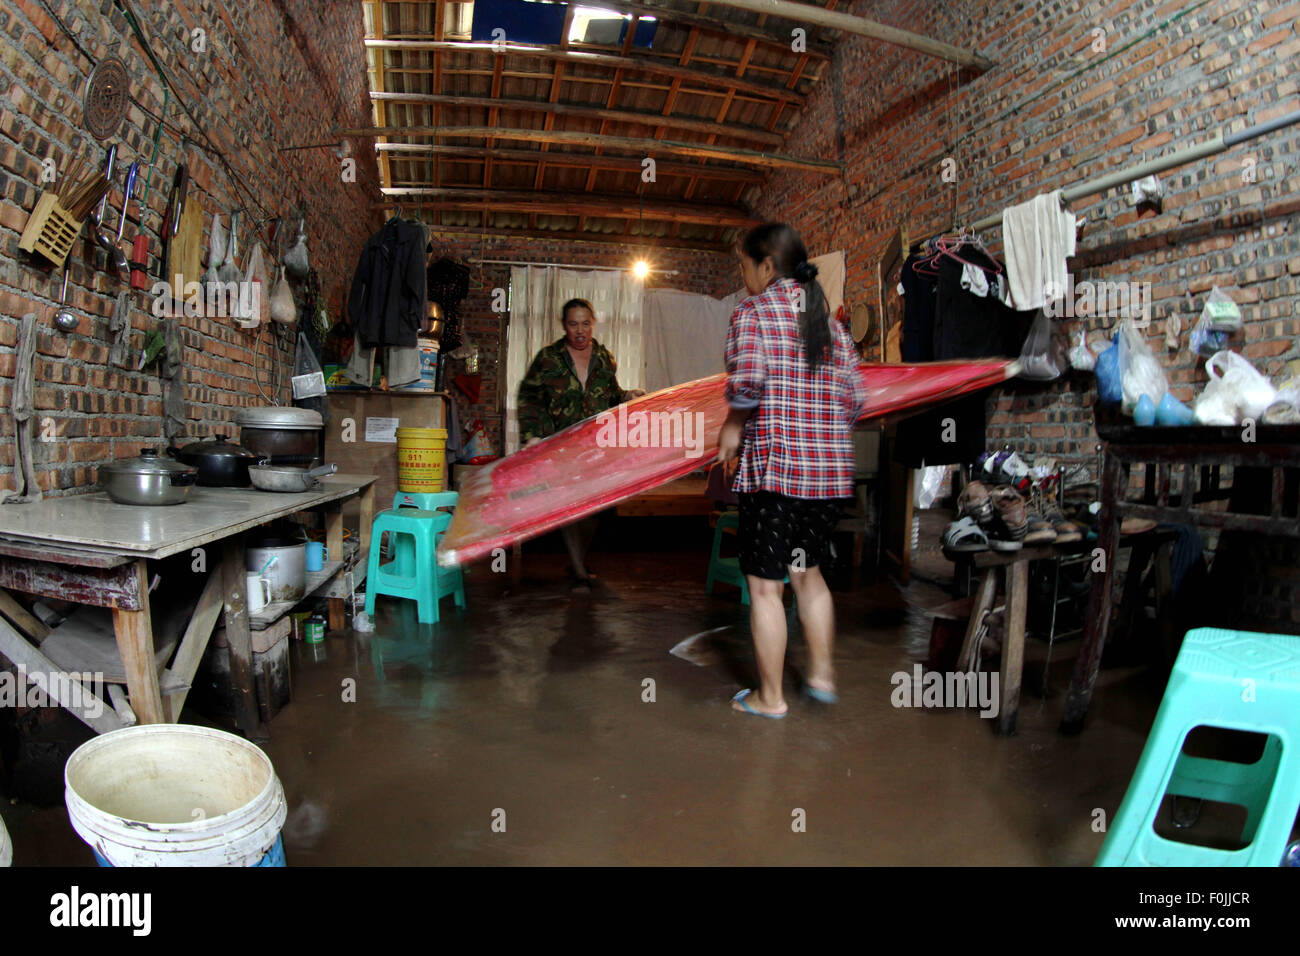 Chongqing, China's Chongqing Municipality. 17th Aug, 2015. Residents save their property in the waterlogged house Stock Photo